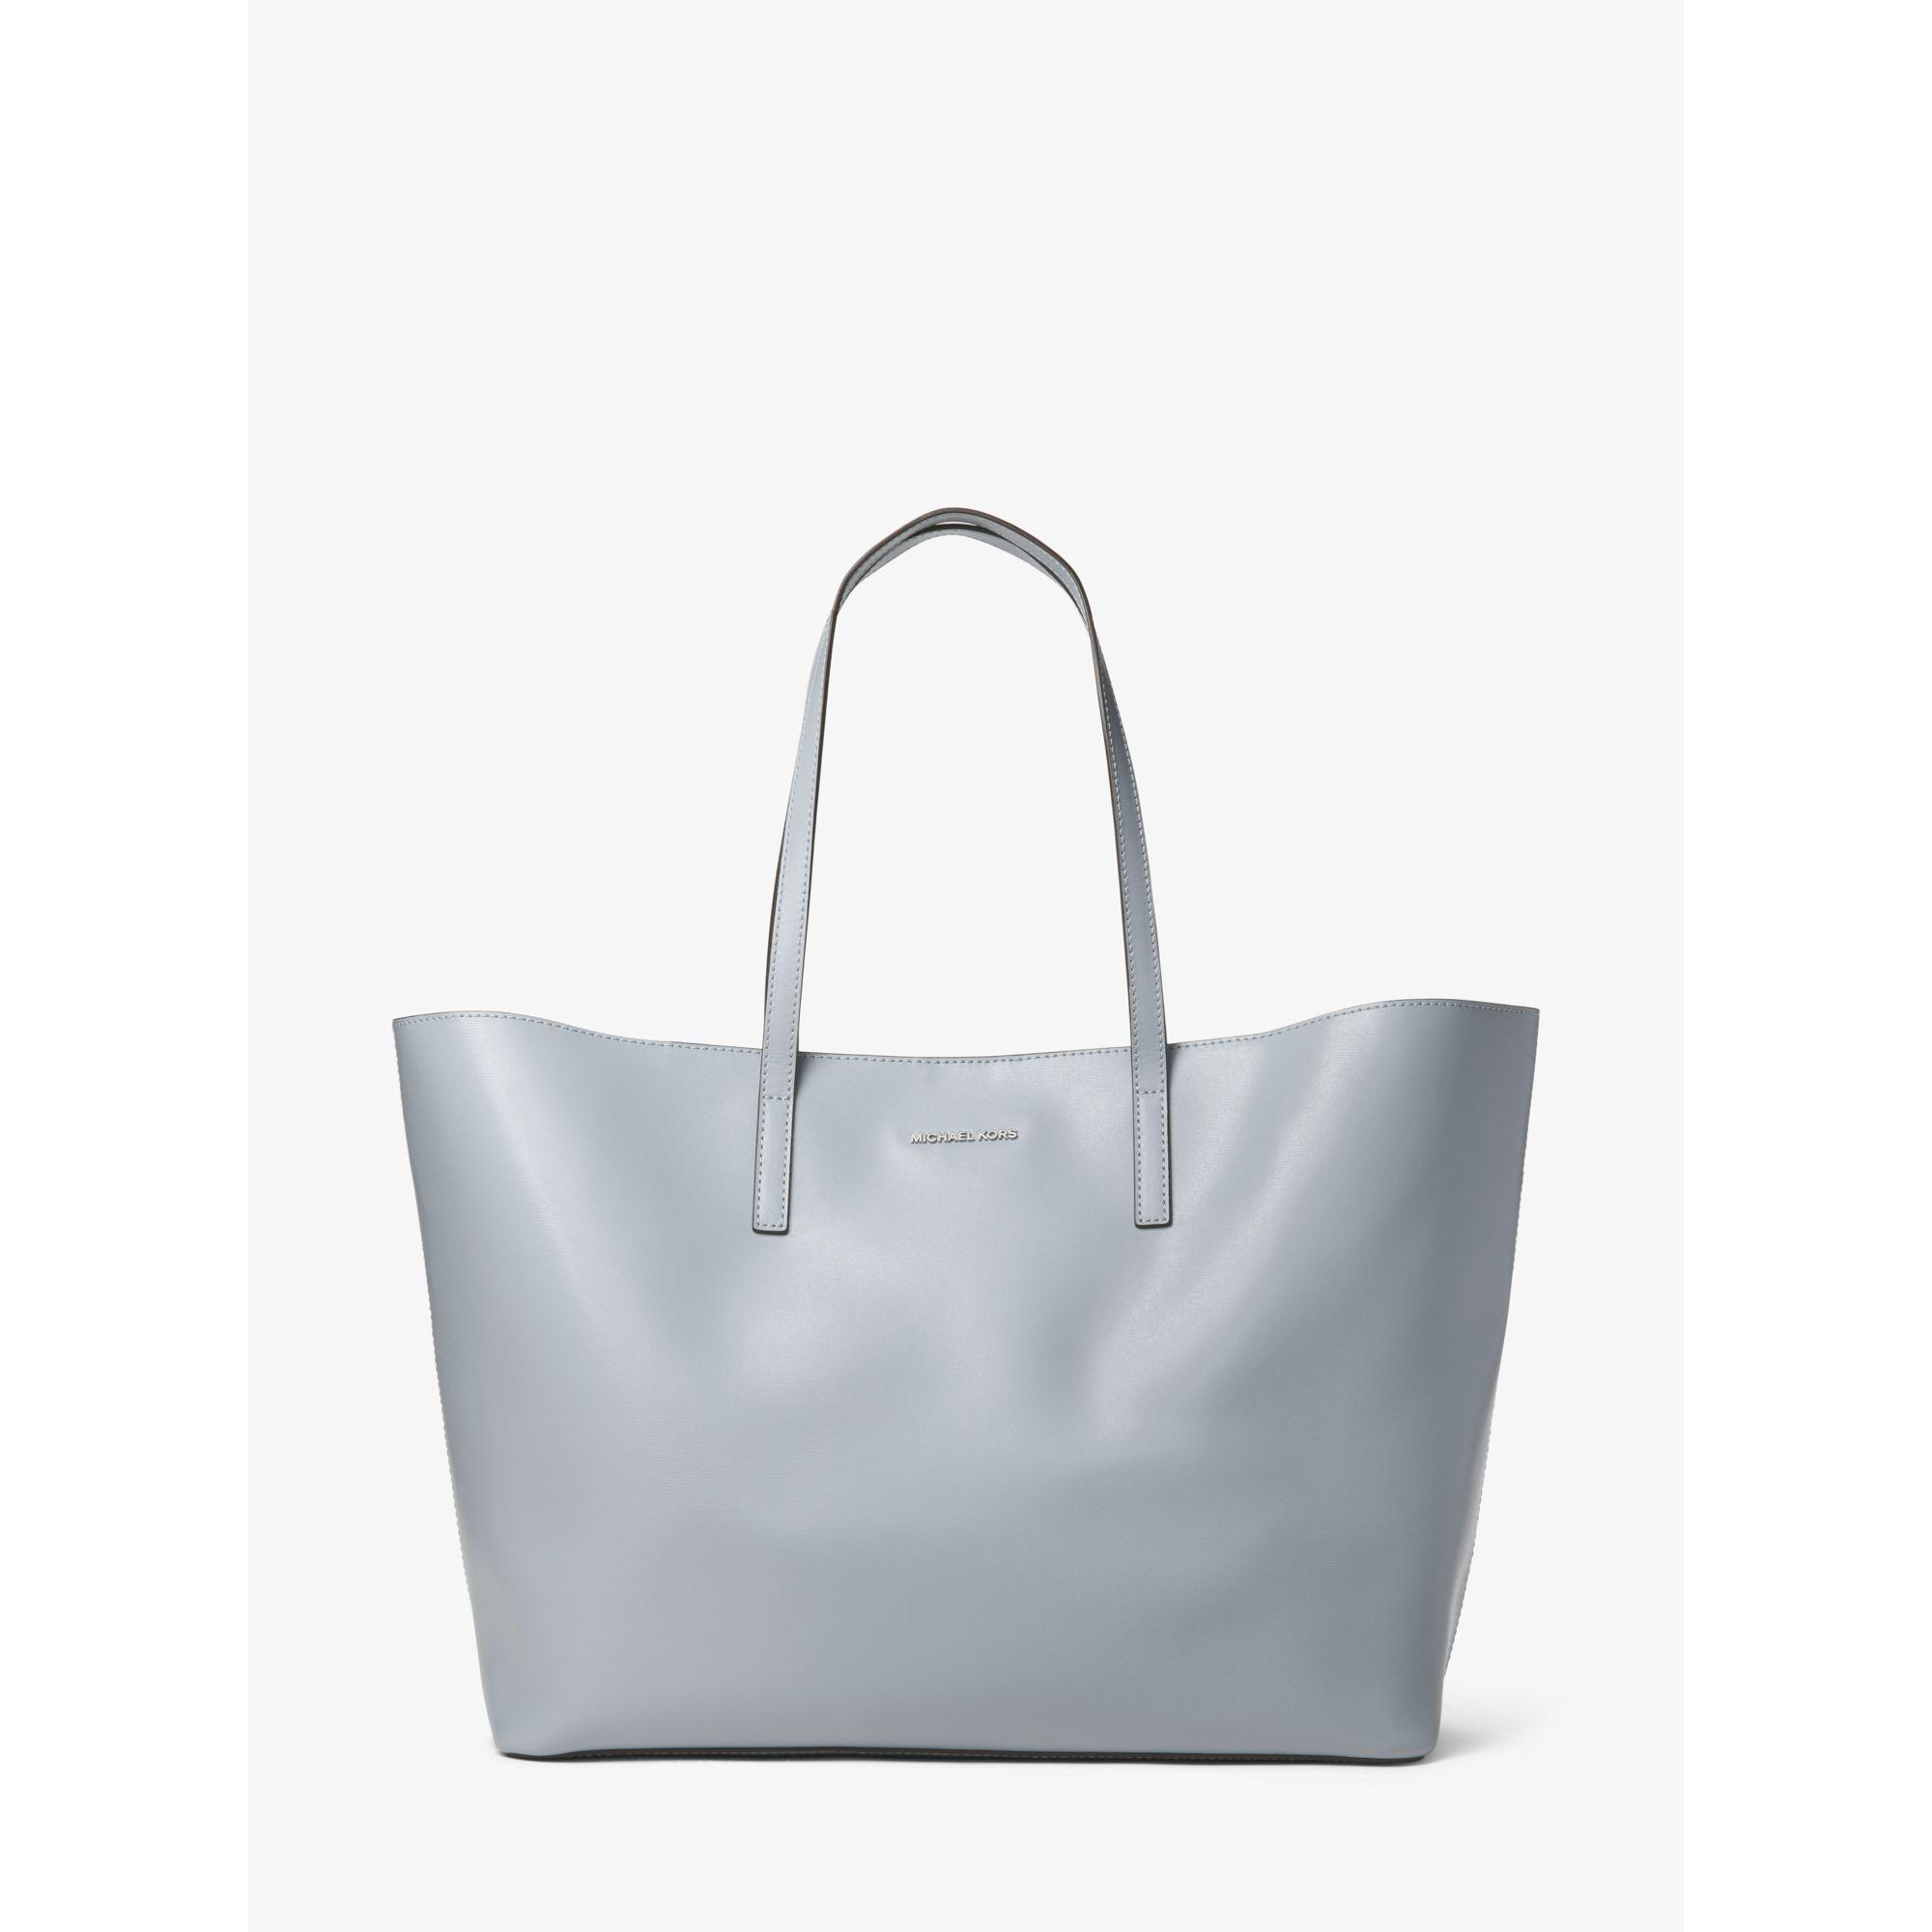 89786c4eda Lyst - Michael Kors Emry Extra-large Leather Tote in Blue